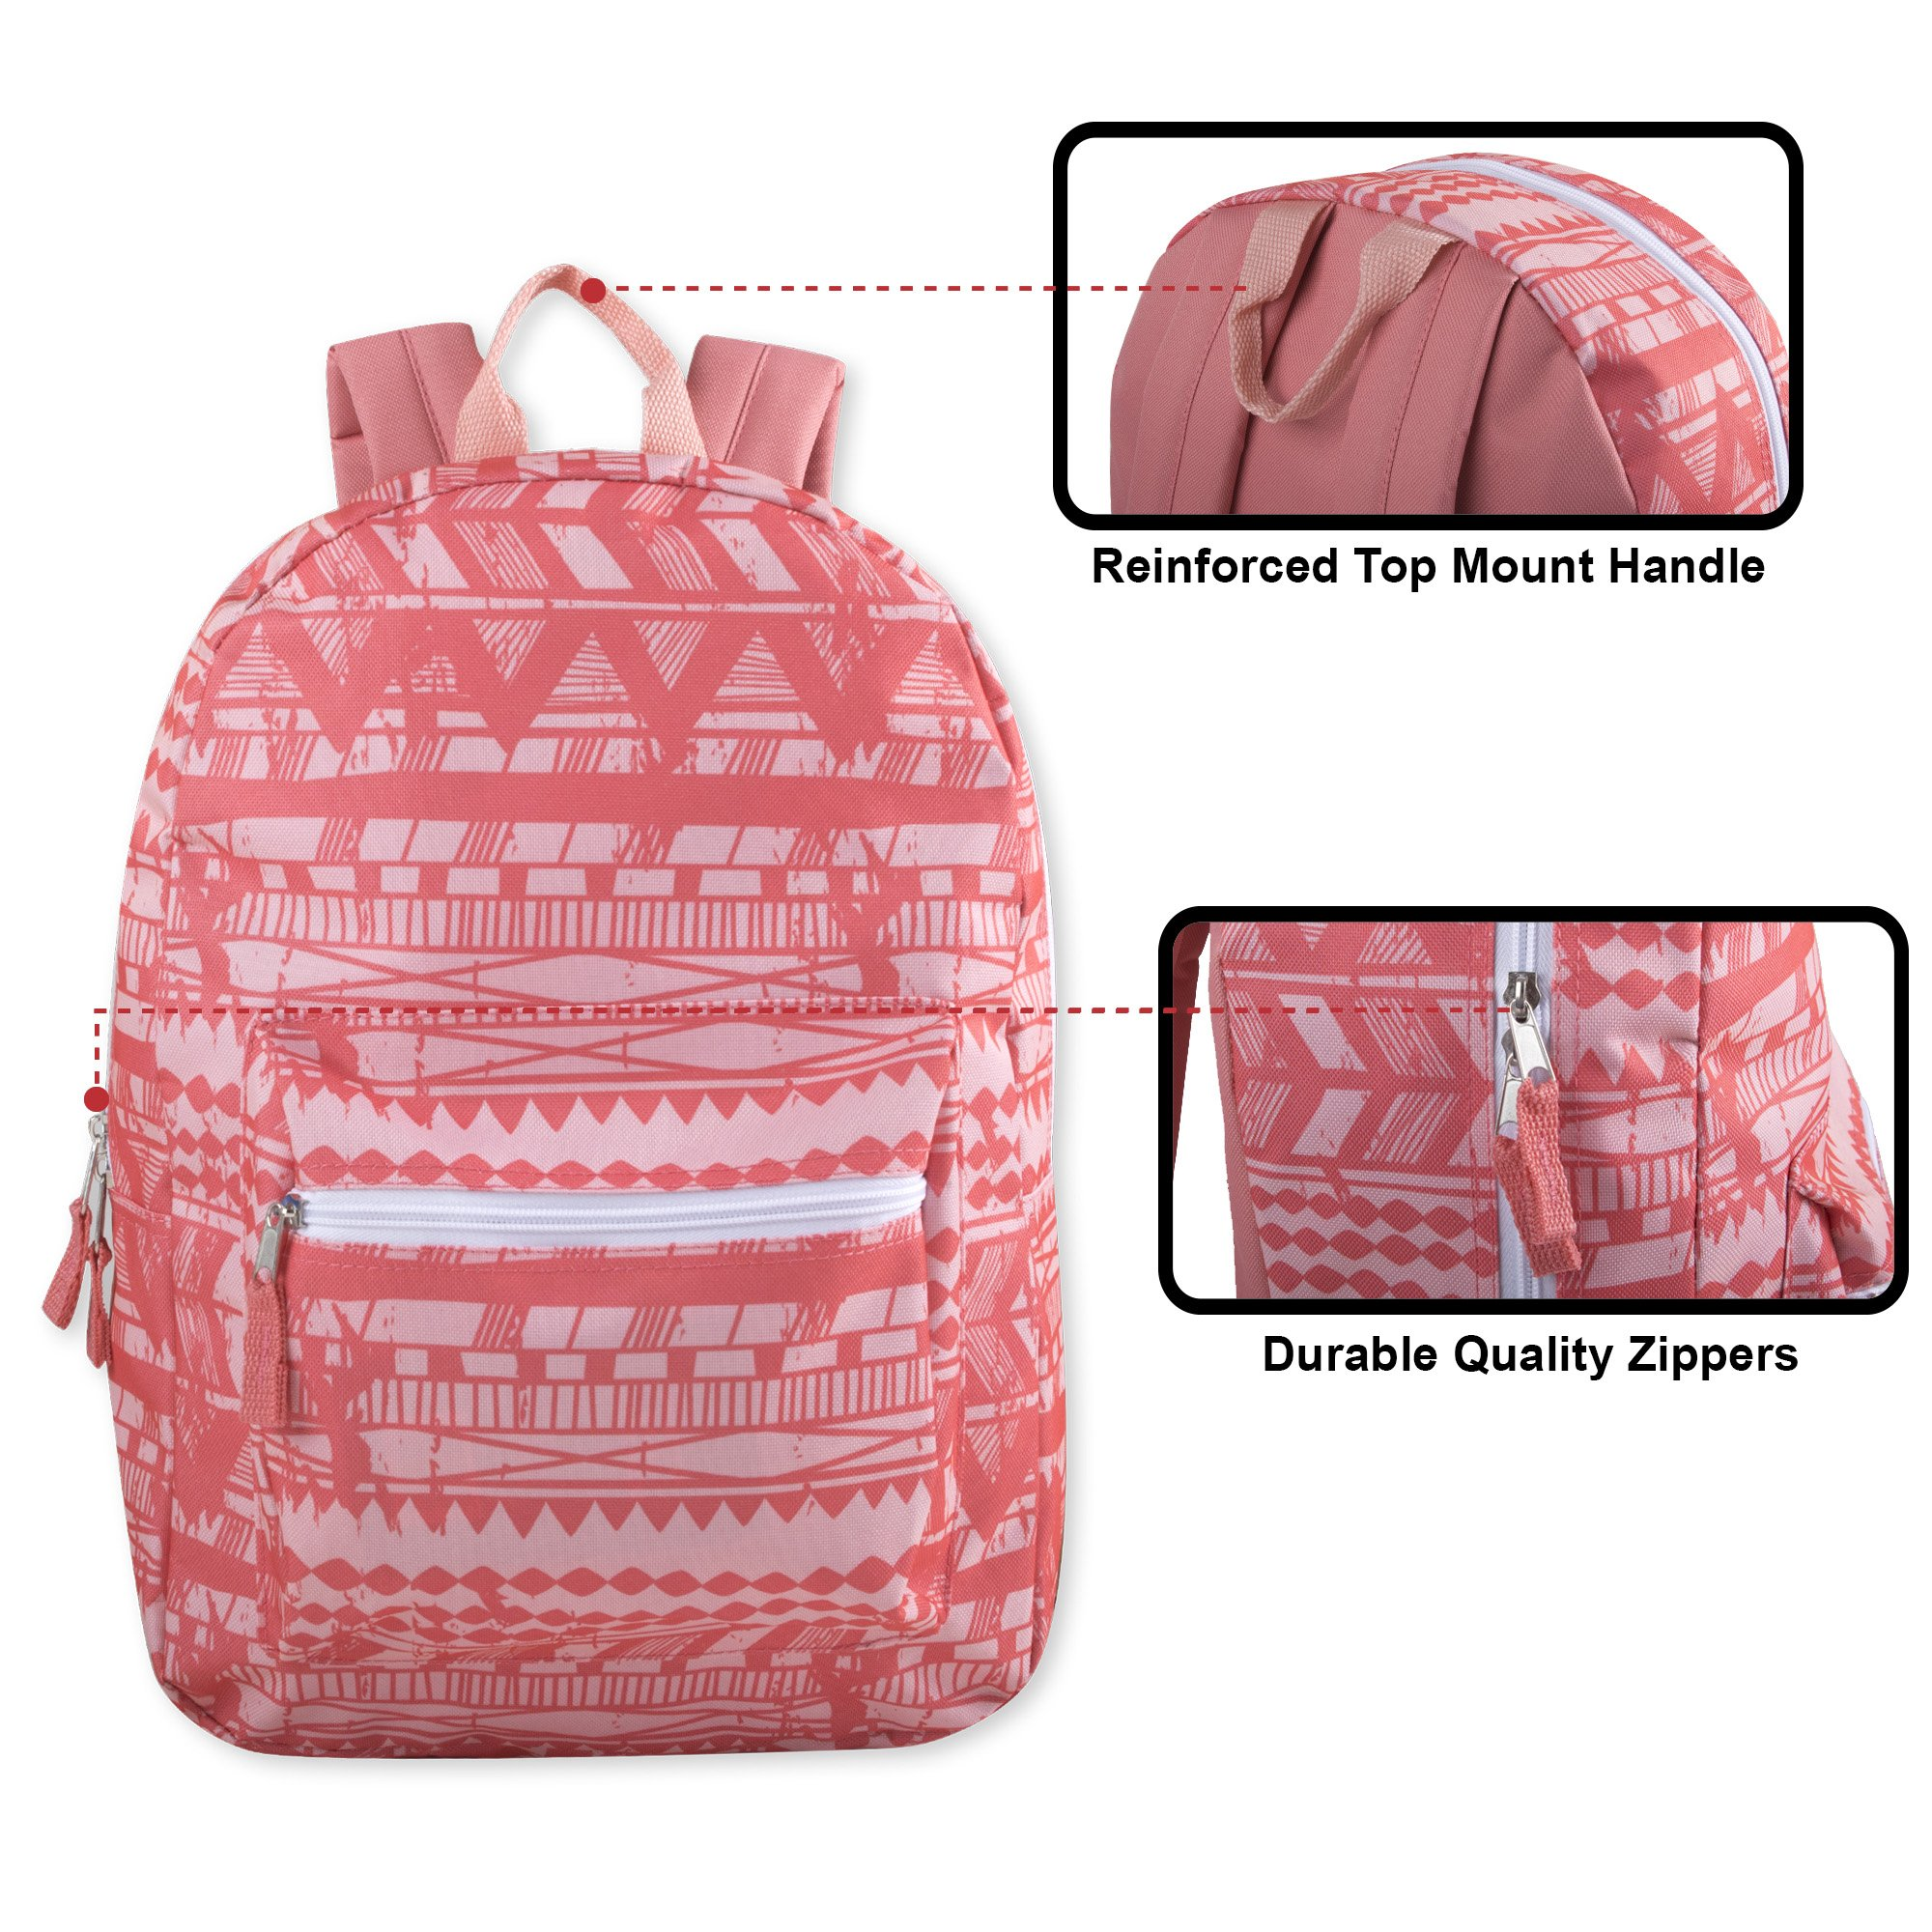 Trailmaker Girls' All Over Printed Backpack 17 Inch With Padded Straps (Peach Tribal) by Trail maker (Image #2)